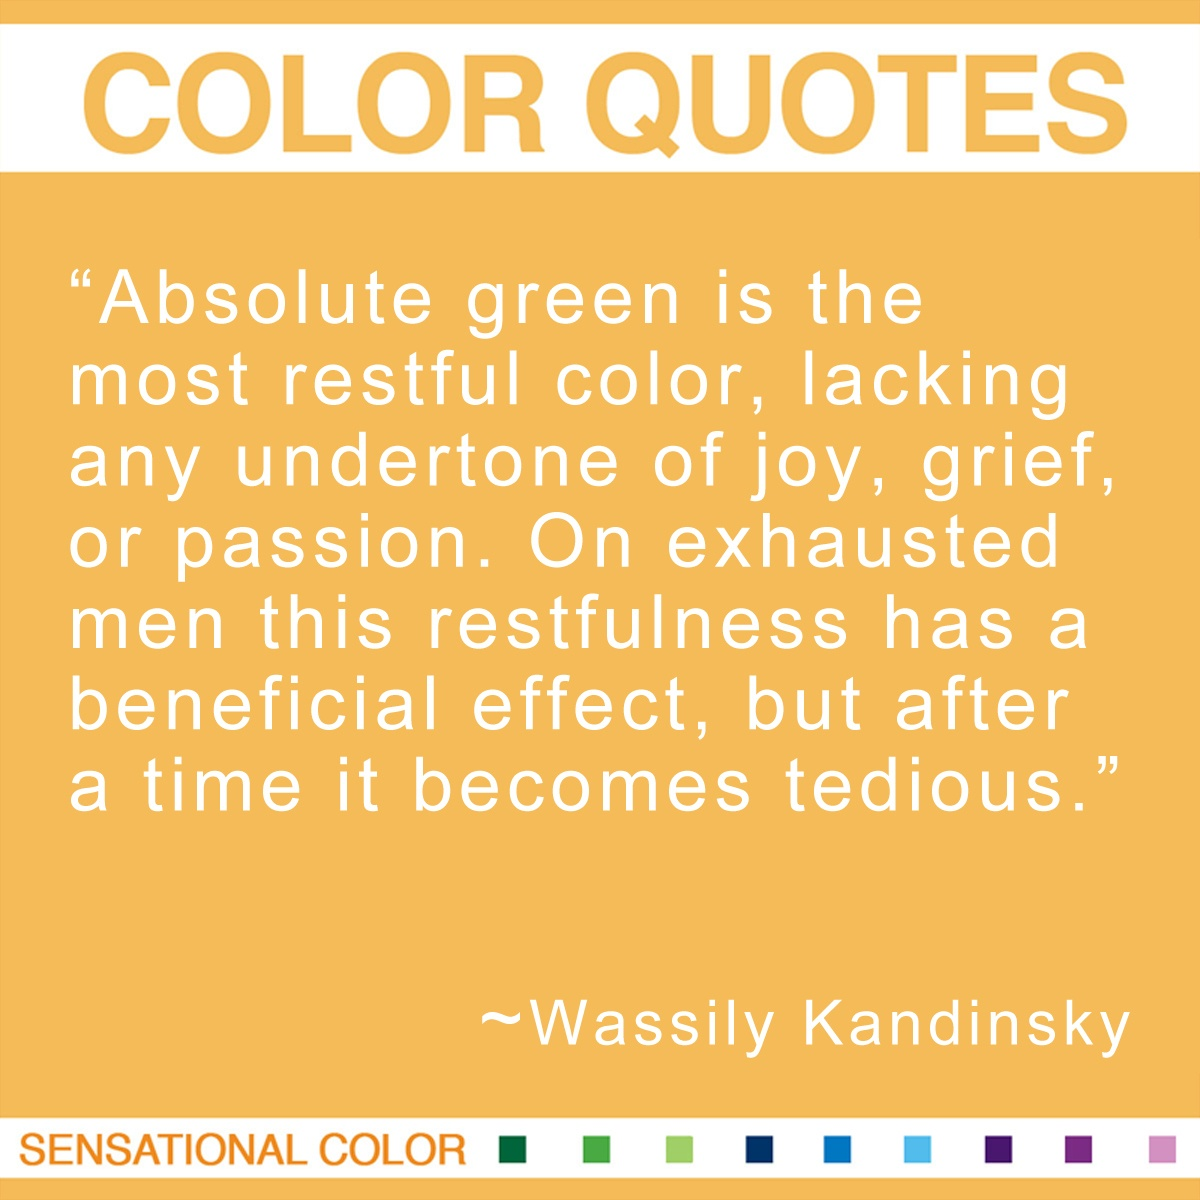 """Absolute green is the most restful color, lacking any undertone of joy, grief, or passion. On exhausted men this restfulness has a beneficial effect, but after a time it becomes tedious."" - Wassily Kandinsky"